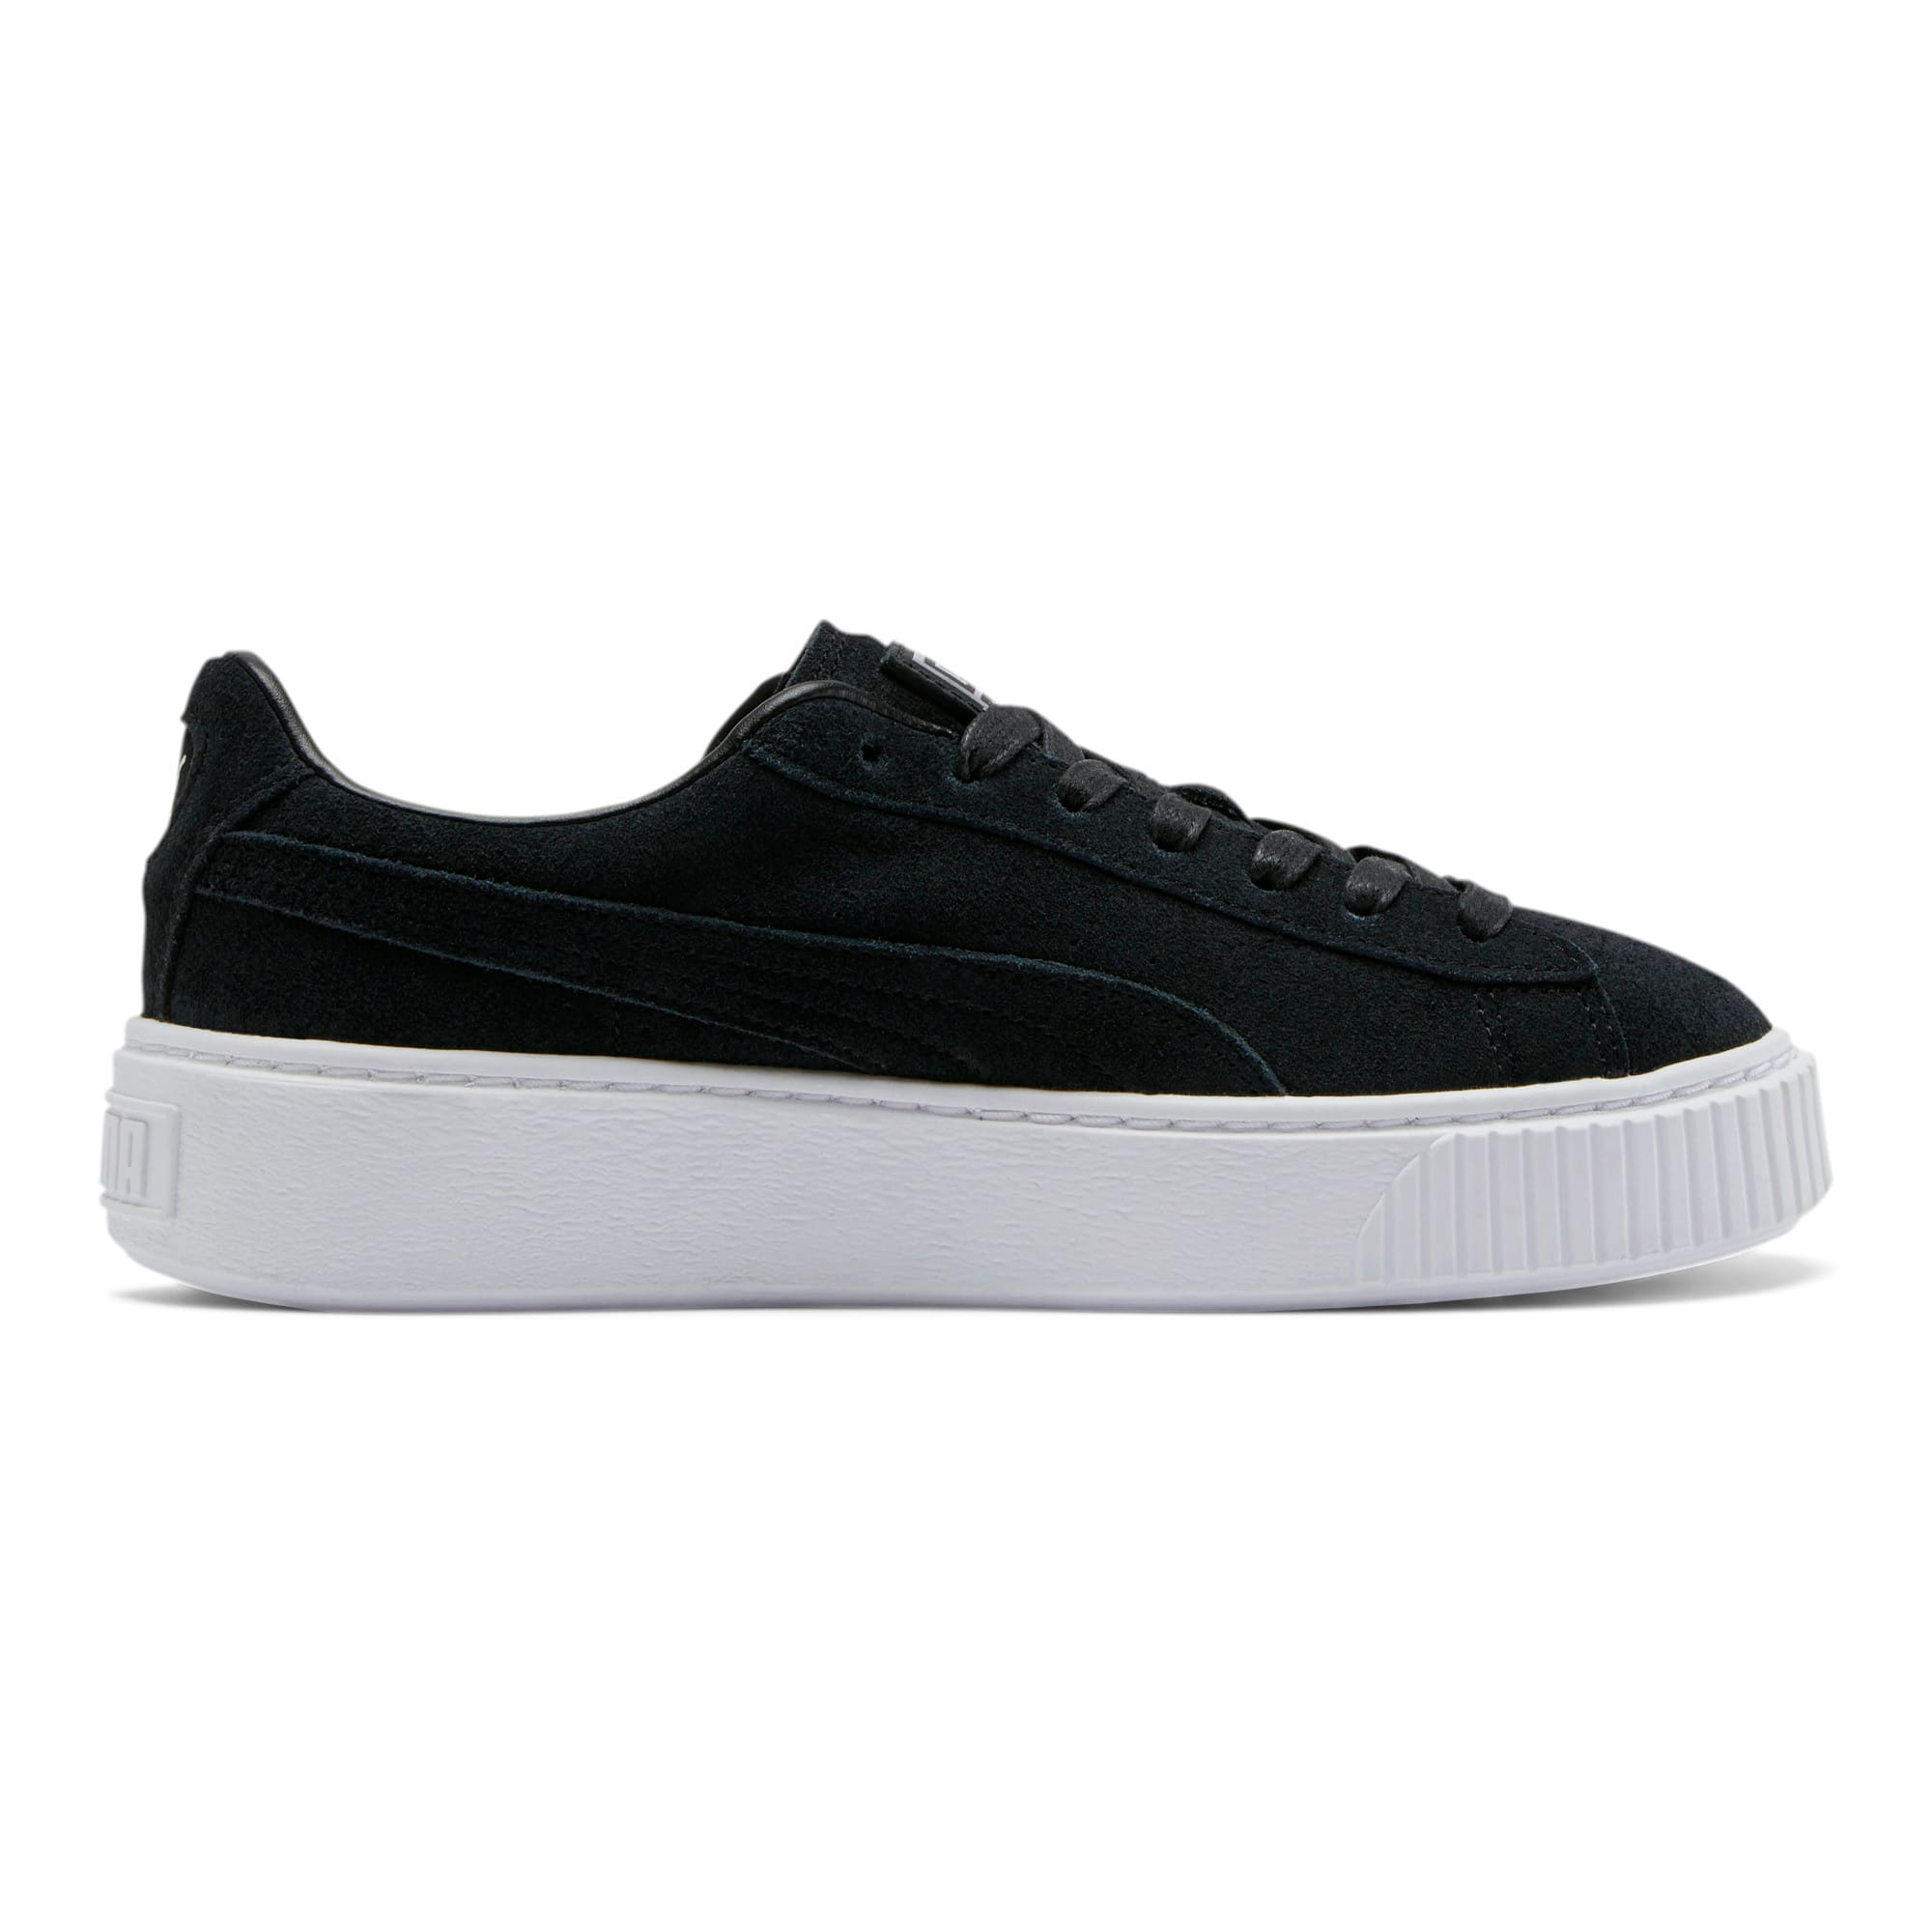 Thumbnail 5 of Suede Platform Women's Sneakers, Puma Black-Black-Puma White, medium